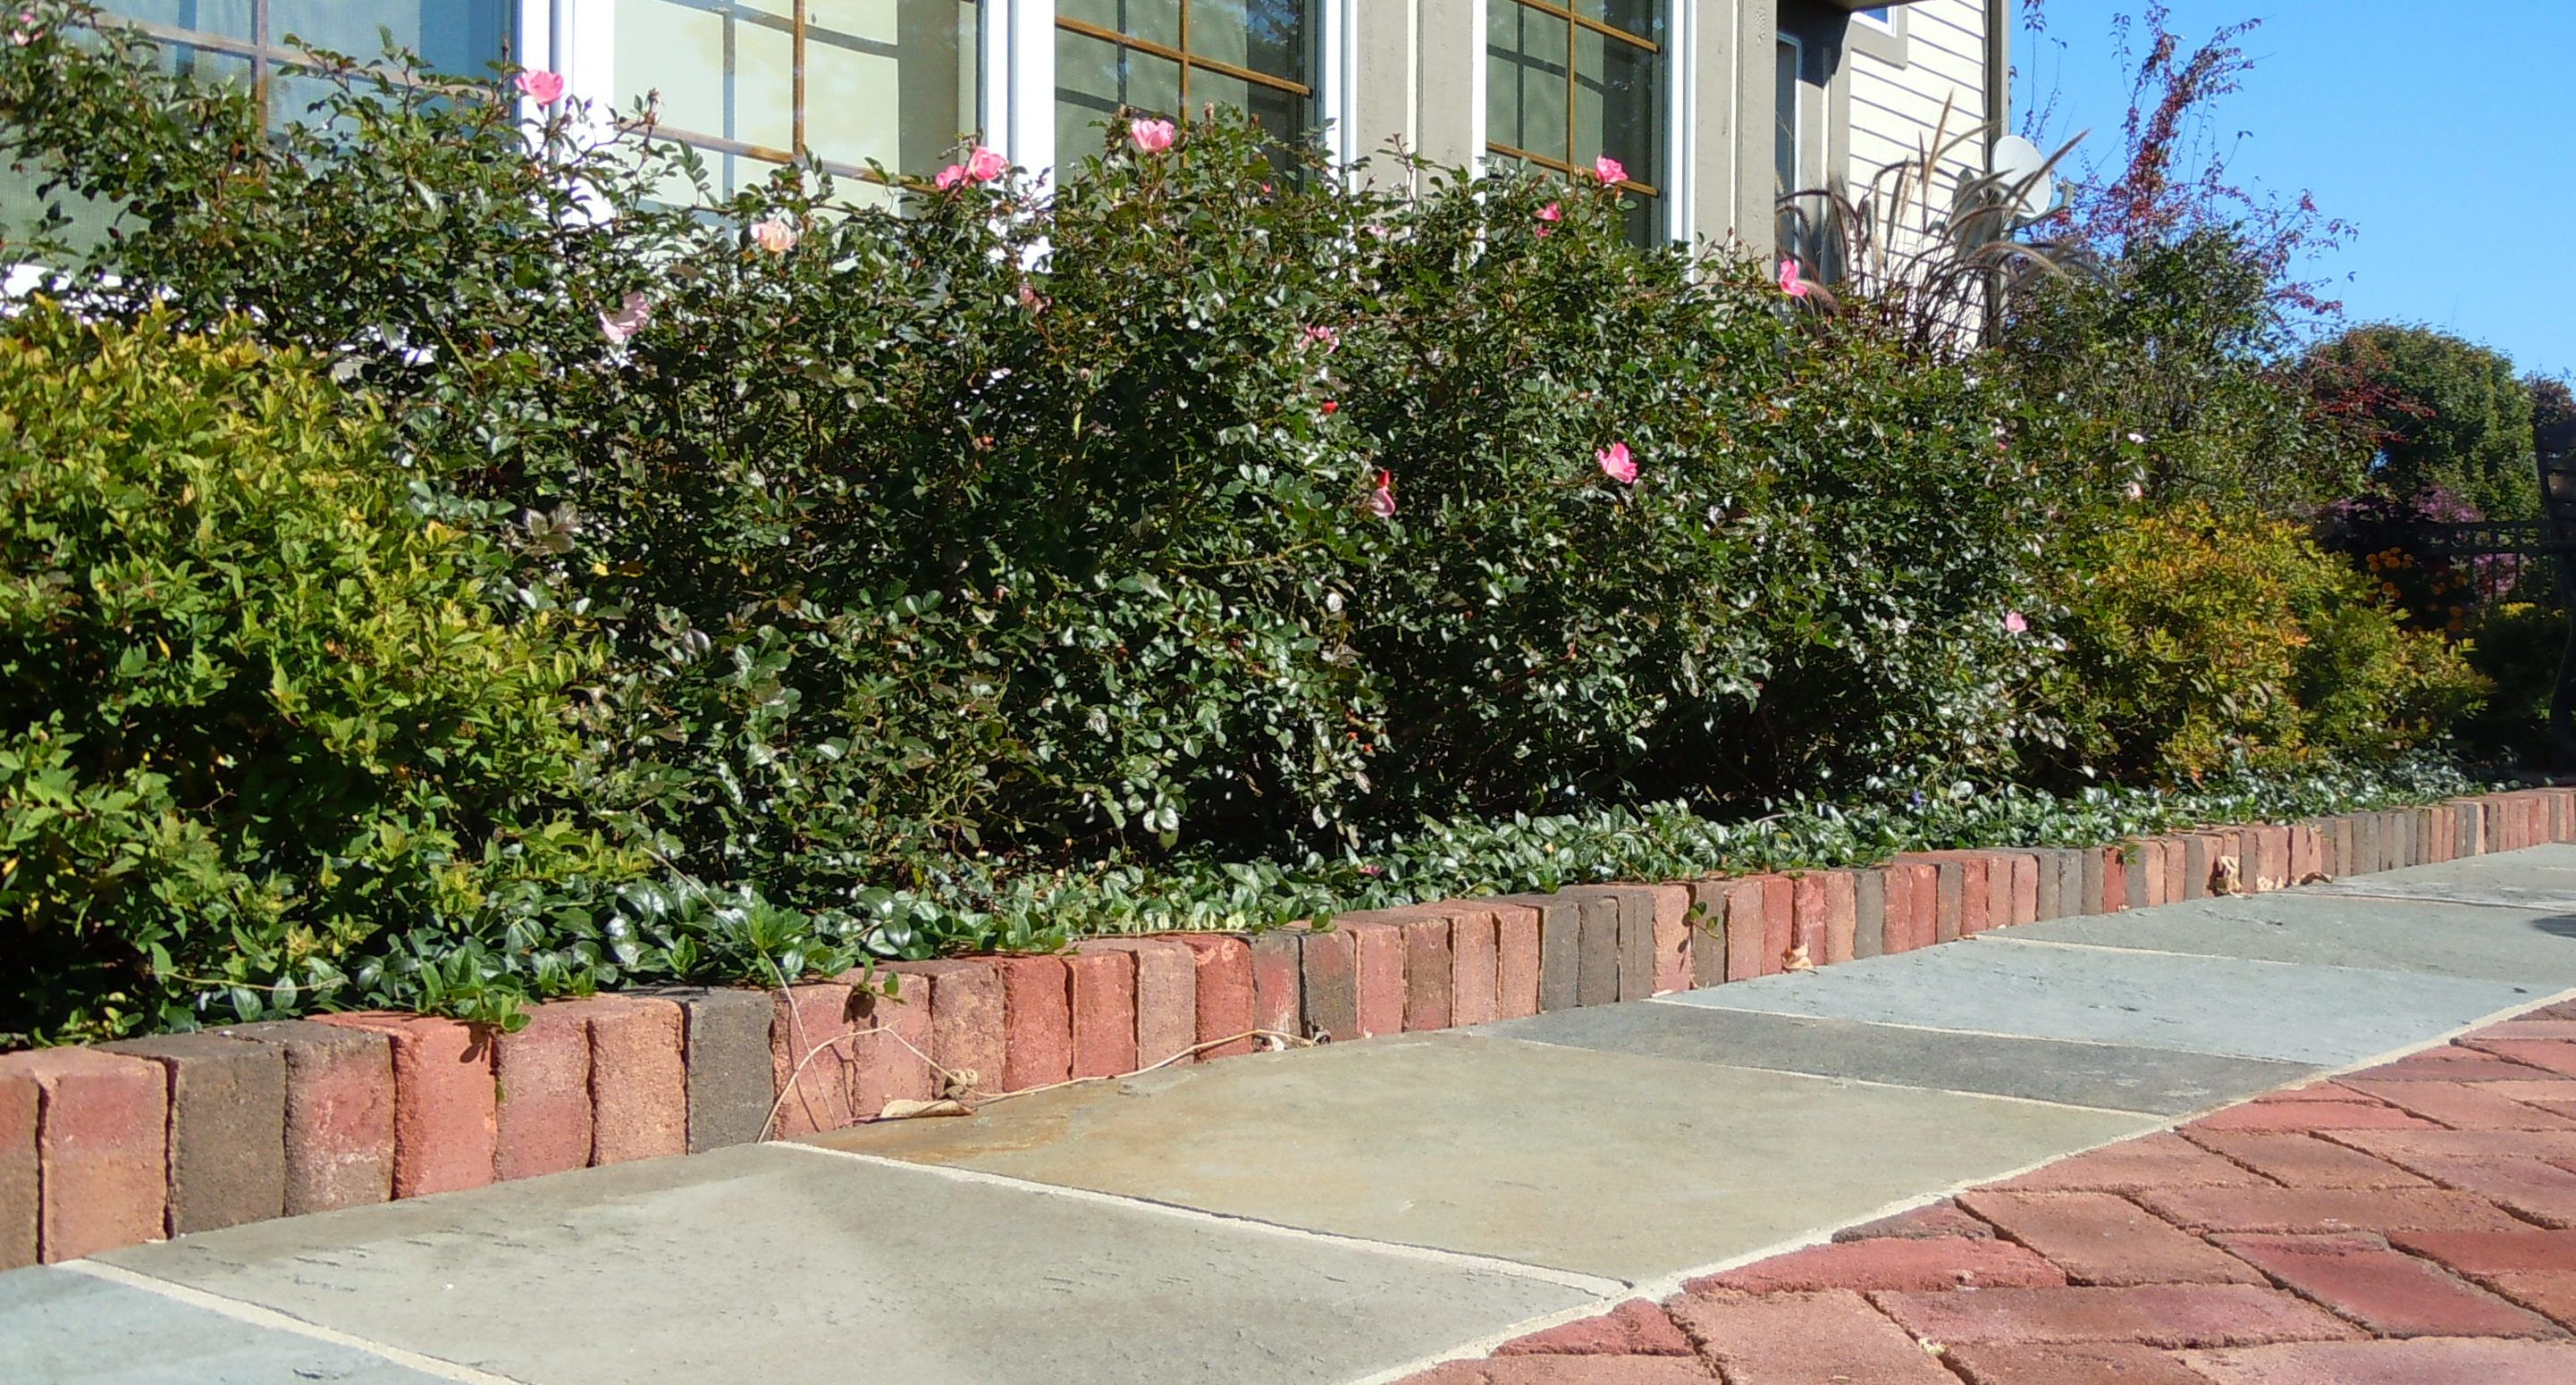 Soldier Course Of Brick Edging Along A Brick Patio Edged In